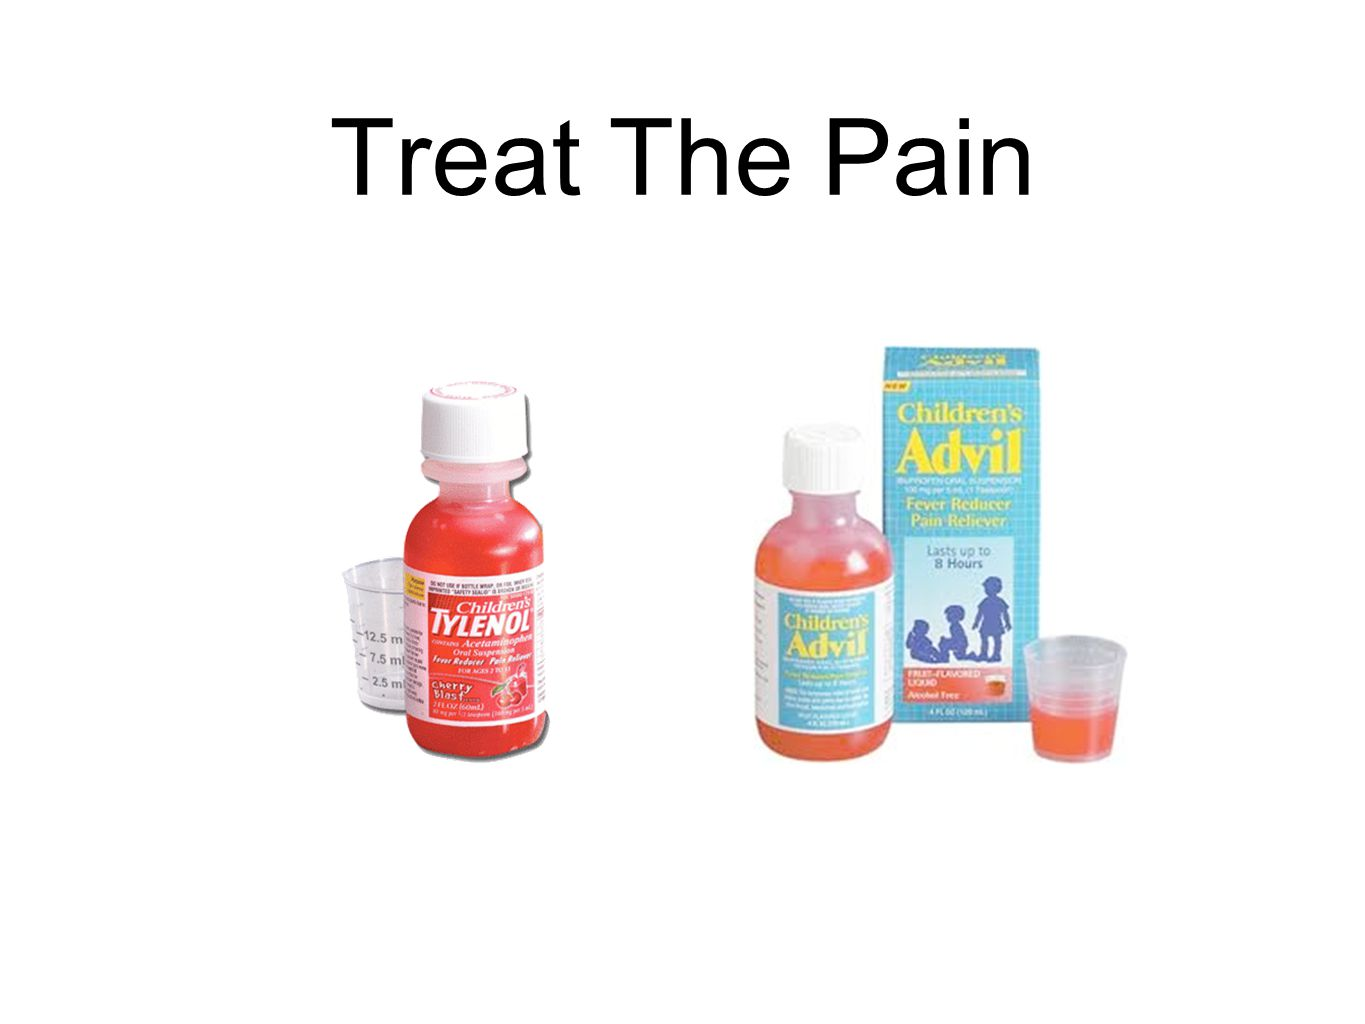 Treat The Pain